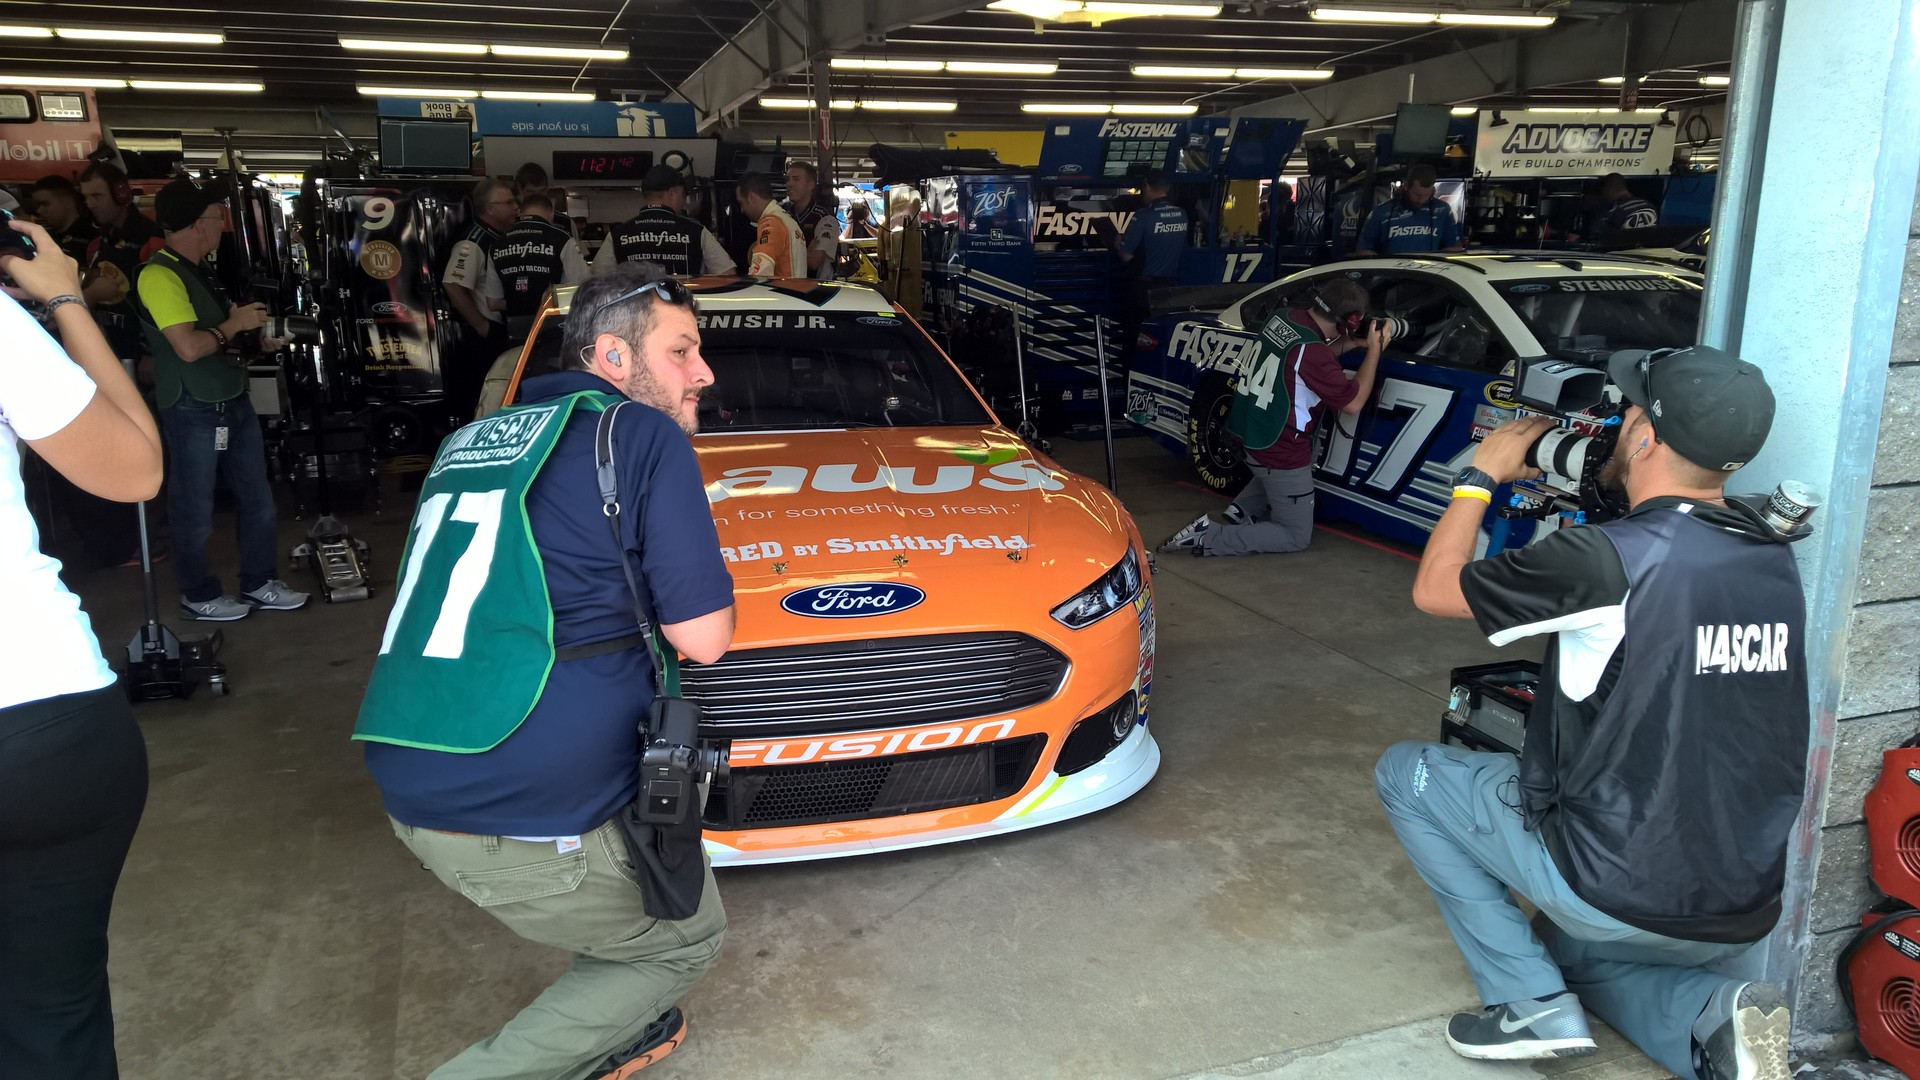 The #9 Shaw's Supermarkets Ford Fusion and NASCAR Sprint Cup Series driver Sam Hornish Jr. being filmed before a practice session from the garage at New Hampshire Motor Speedway. July 17th, 2015.